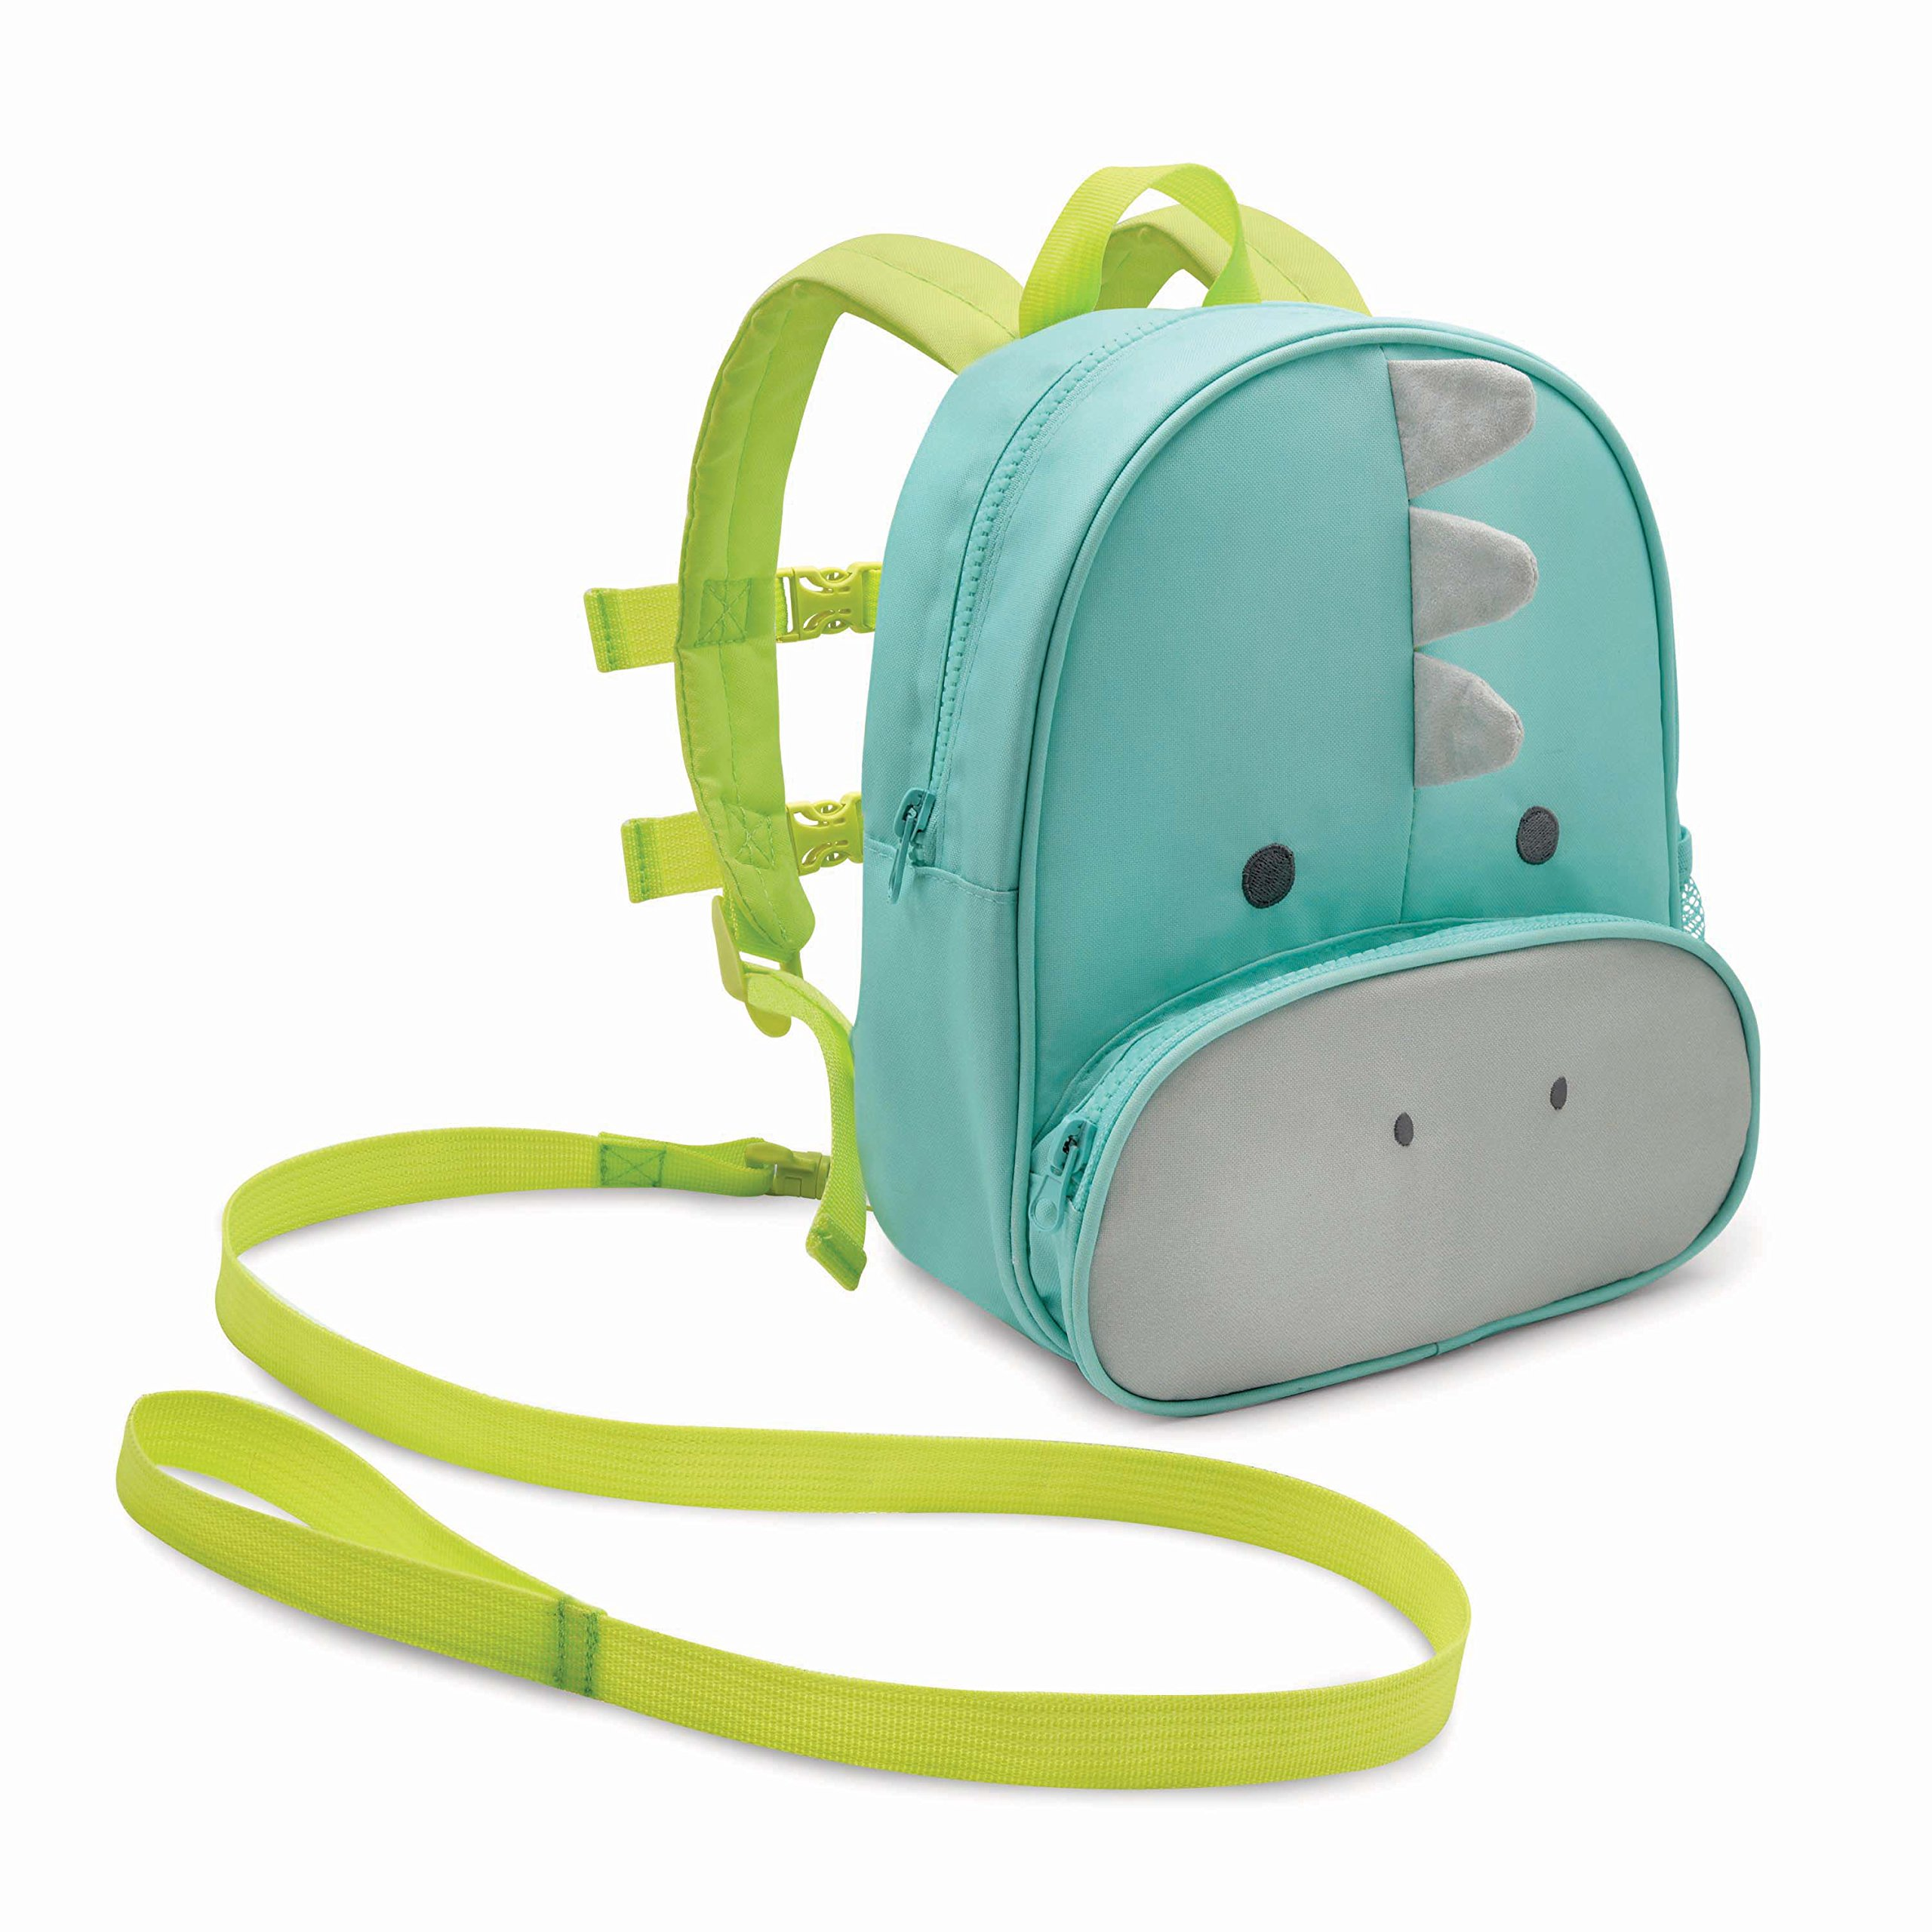 Travel Bug Toddler Safety Dinosaur Backpack Harness with Removable Tether, Teal/Grey